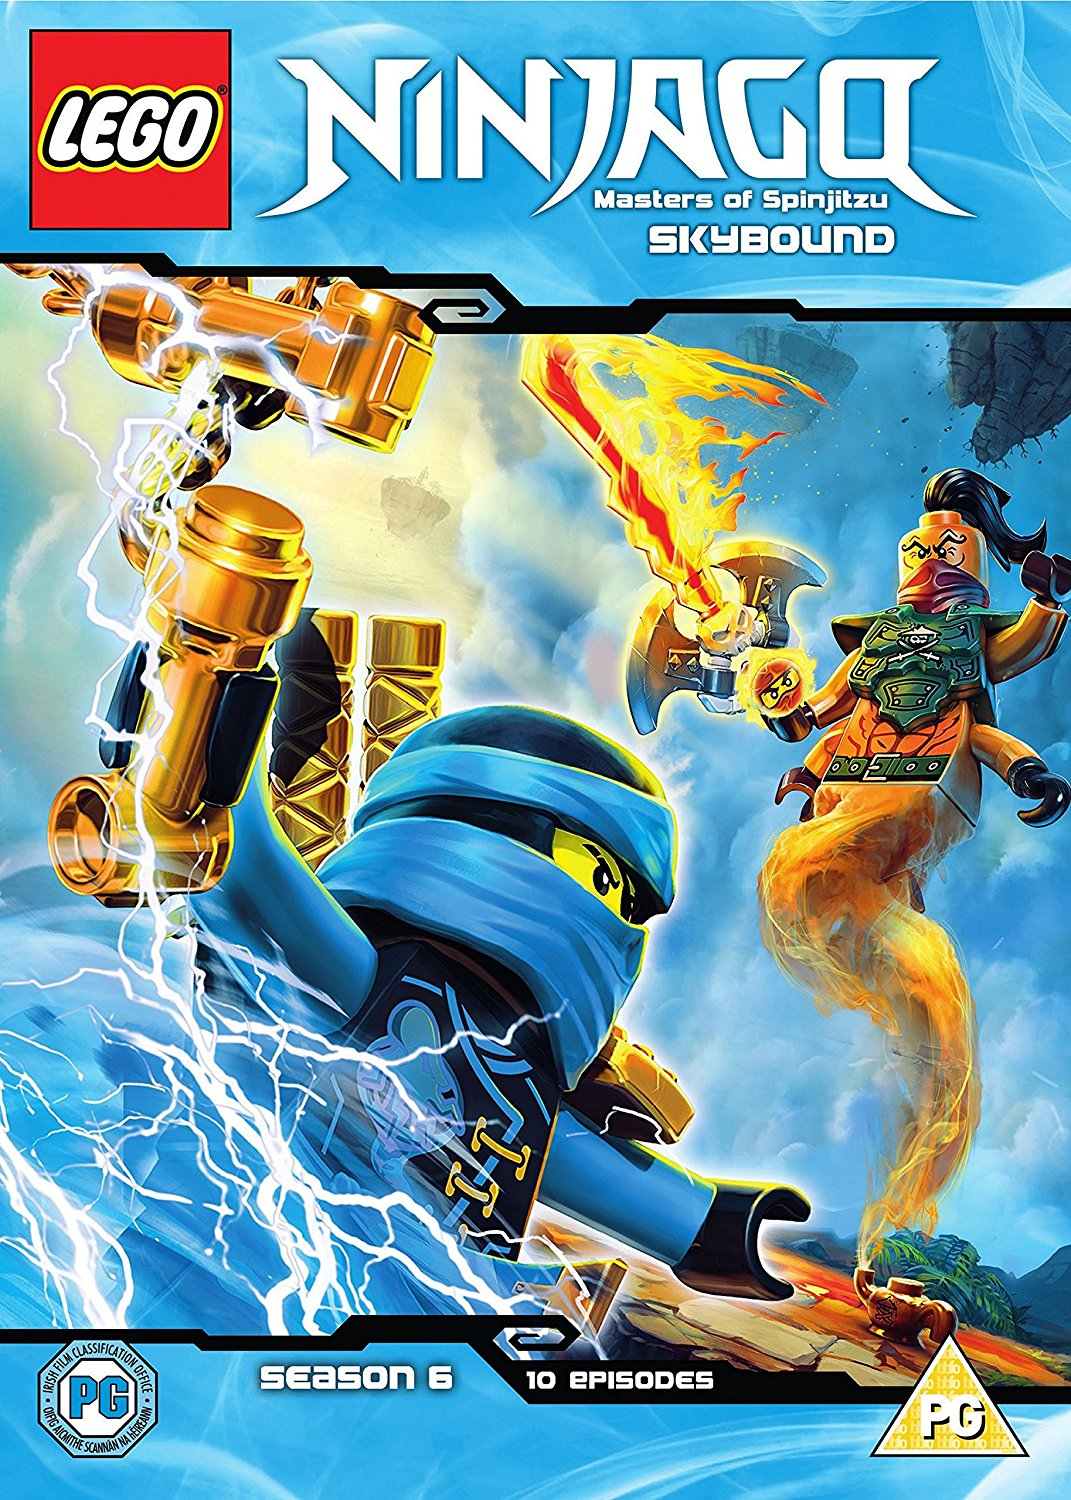 Lego ninjago masters of spinjitzu season 6 part 2 dvd - Lego ninjago logo ...